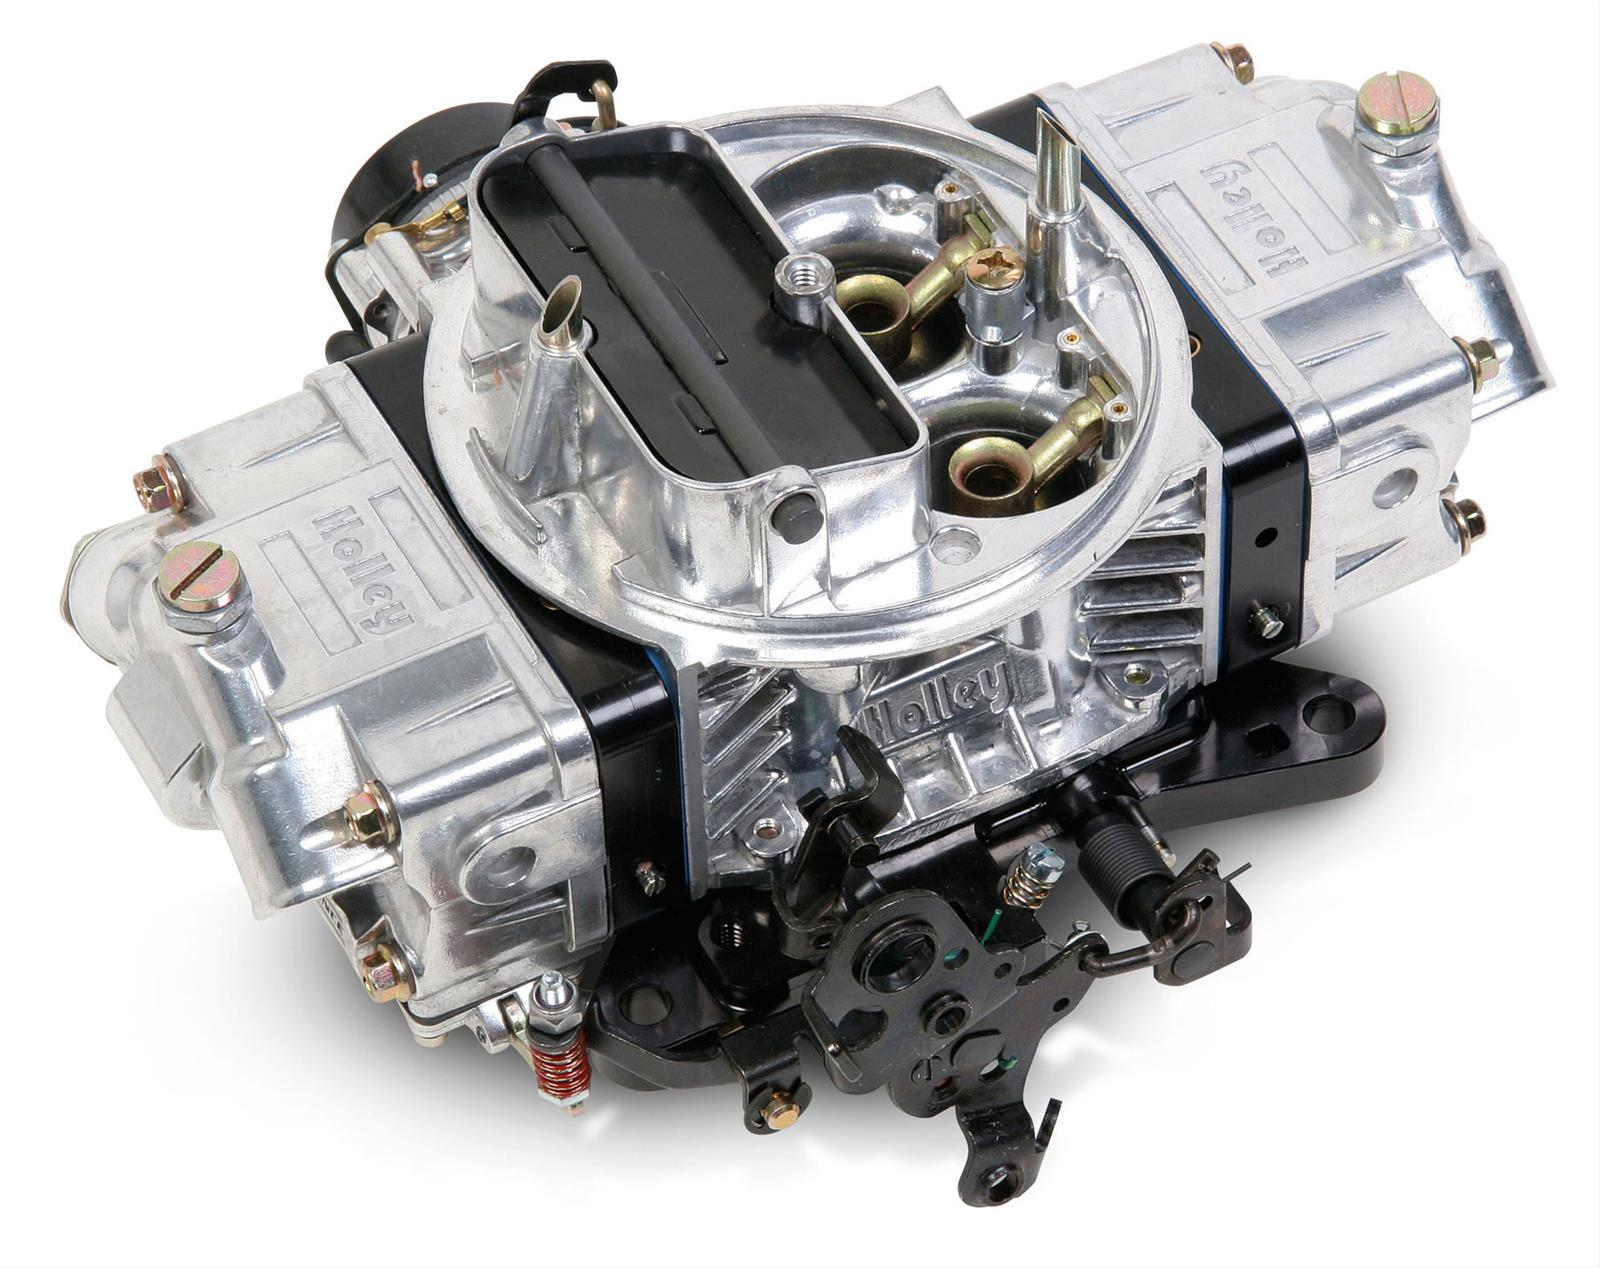 hight resolution of holley ultra double pumper carburetors 0 76750bk free shipping on orders over 99 at summit racing